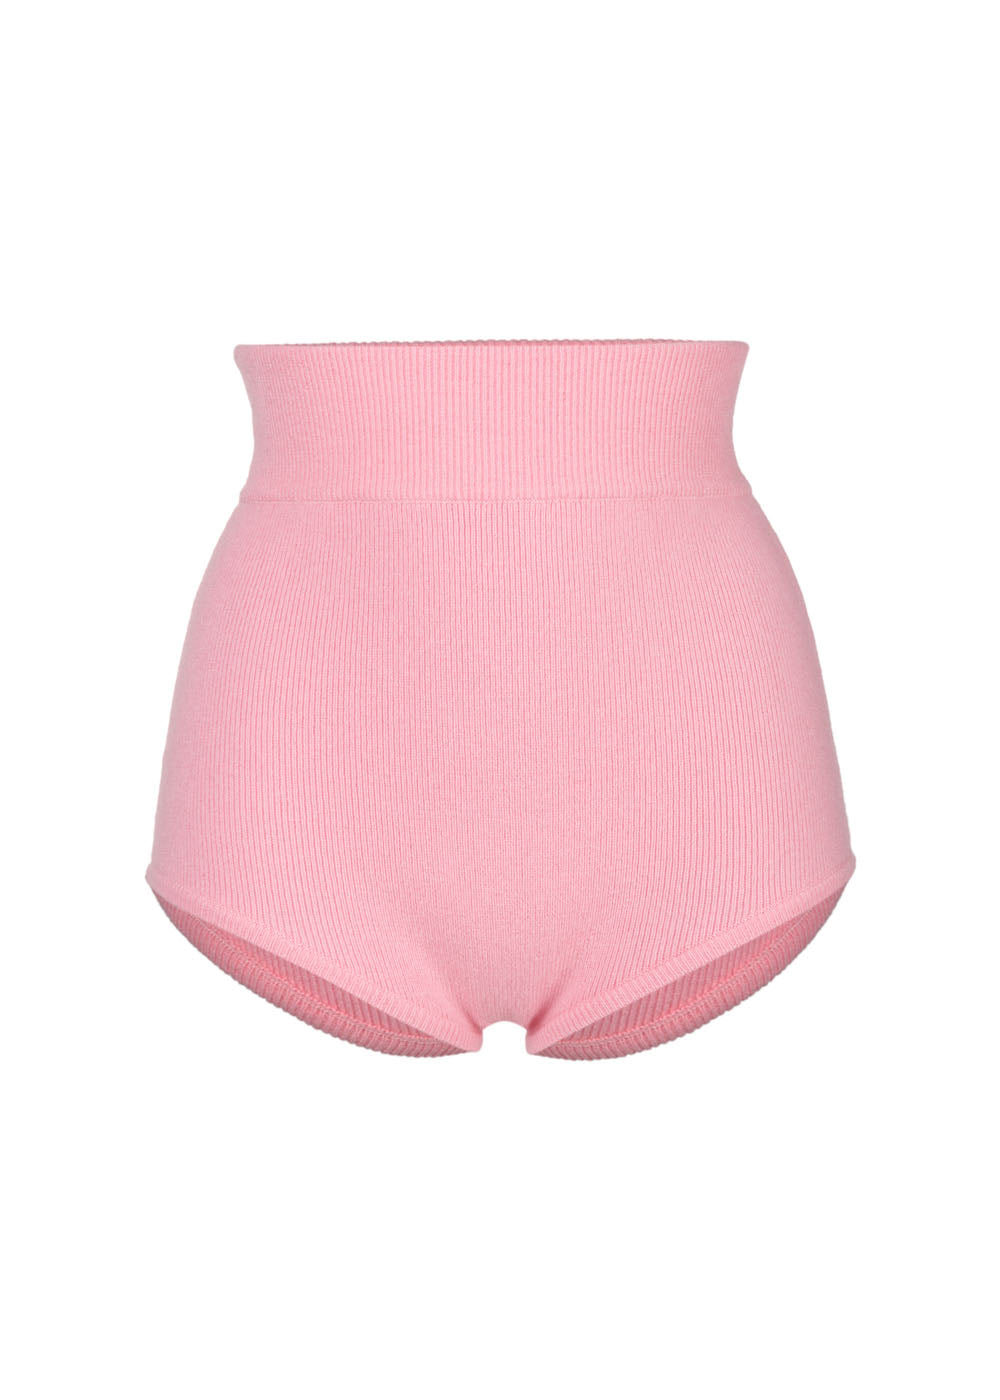 Mimie Retro Knickers